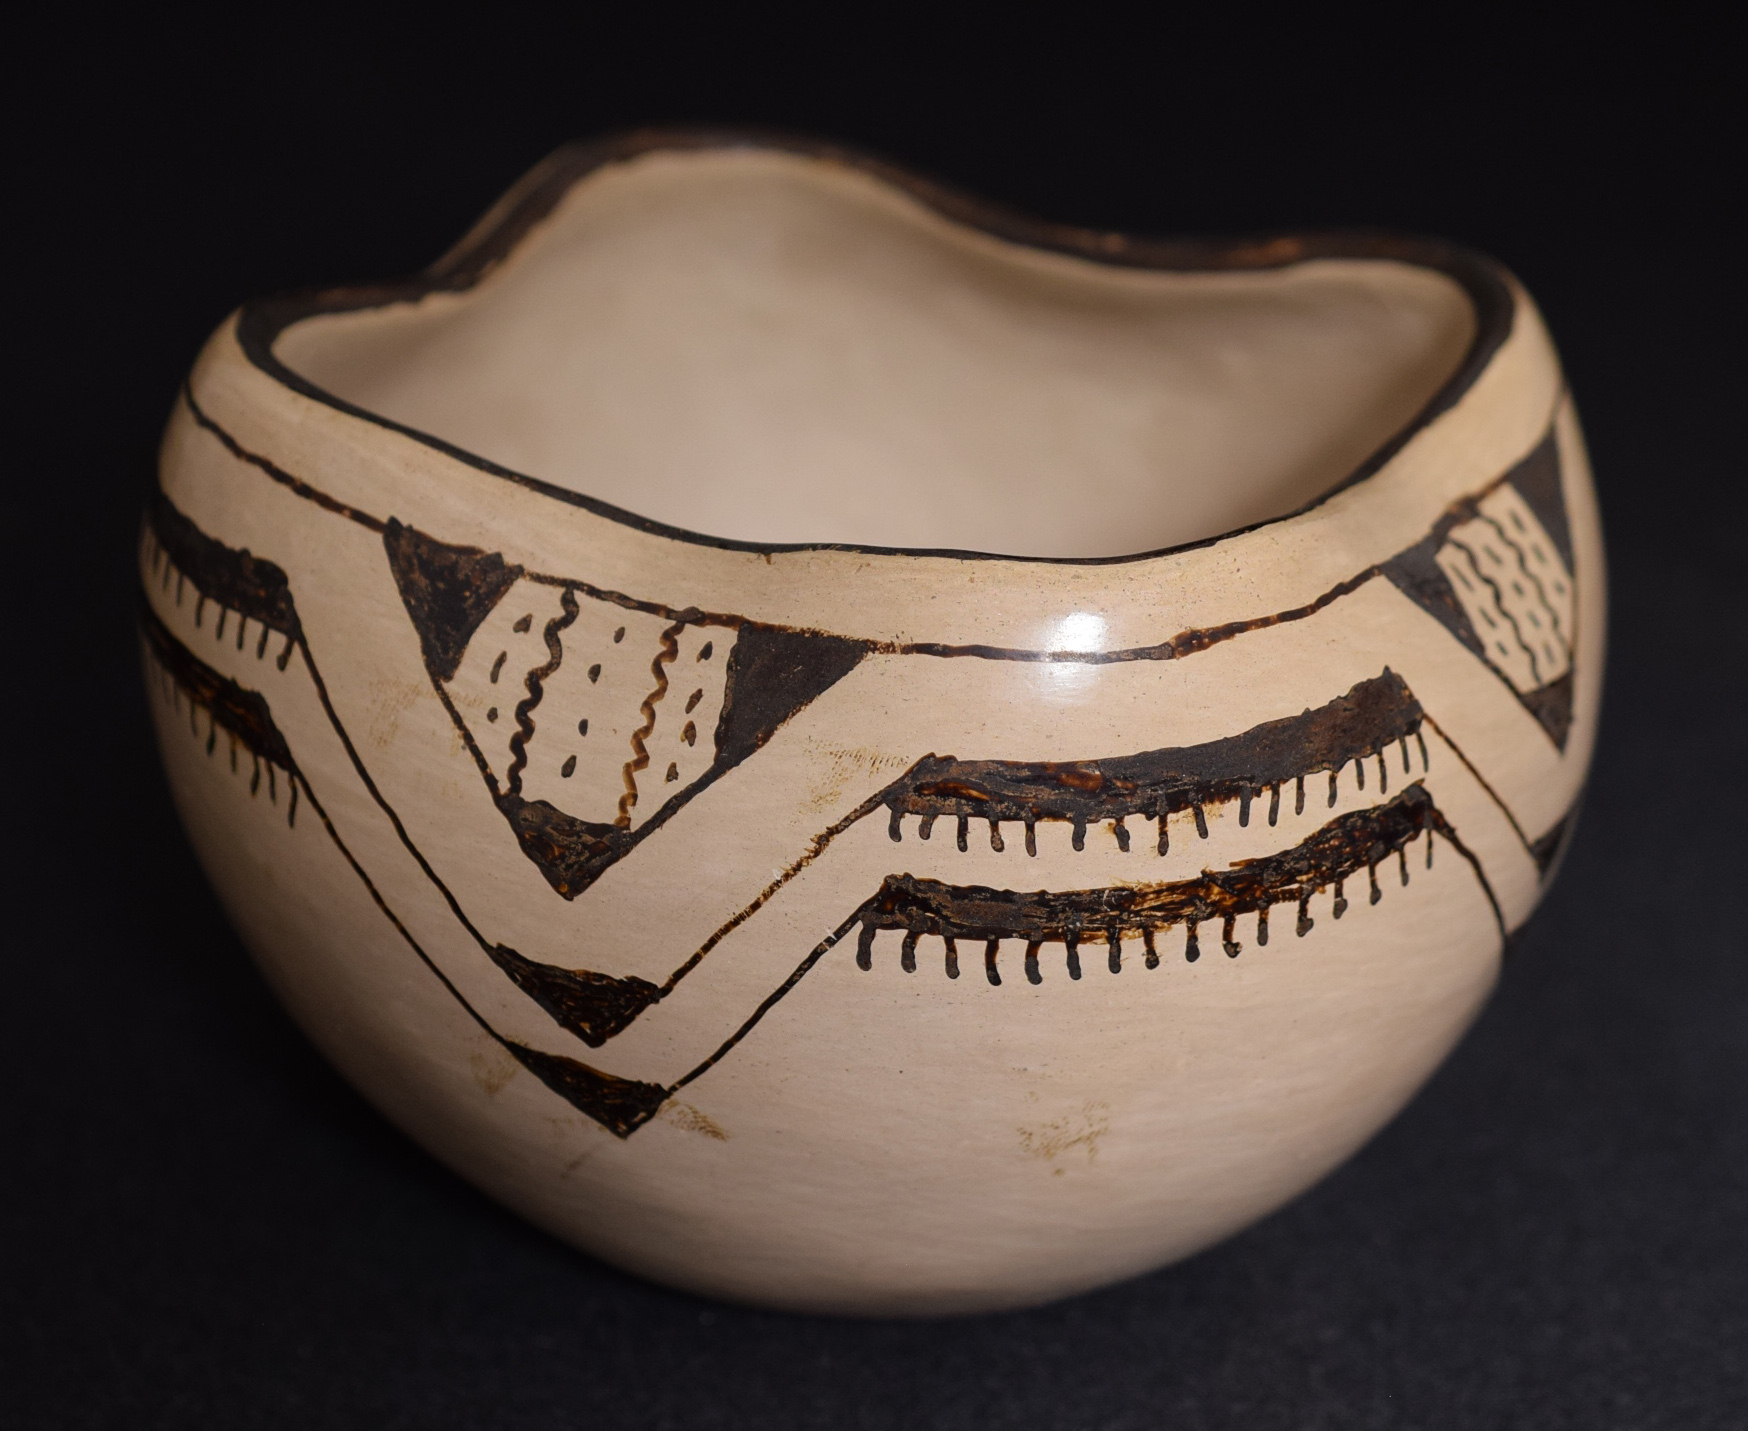 Pee-Posh pottery collection, bowl with geometric design